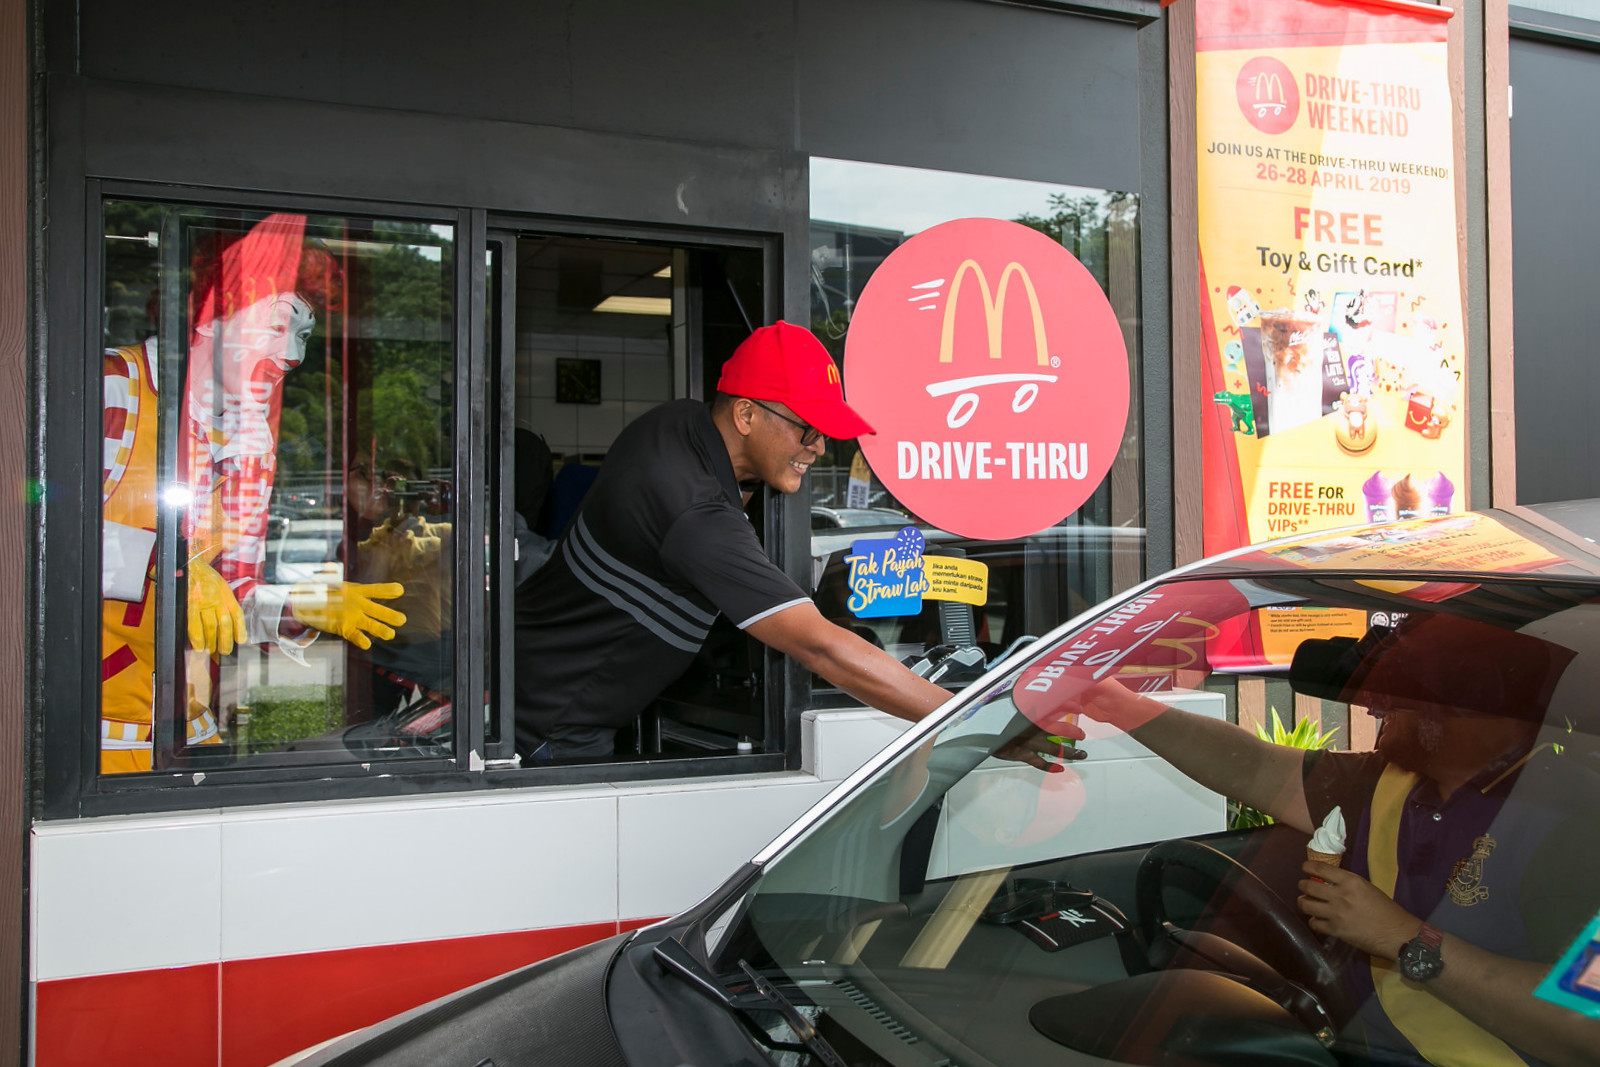 McDonald's Malaysia: Fuelling Up on Drive-Thru Convenience